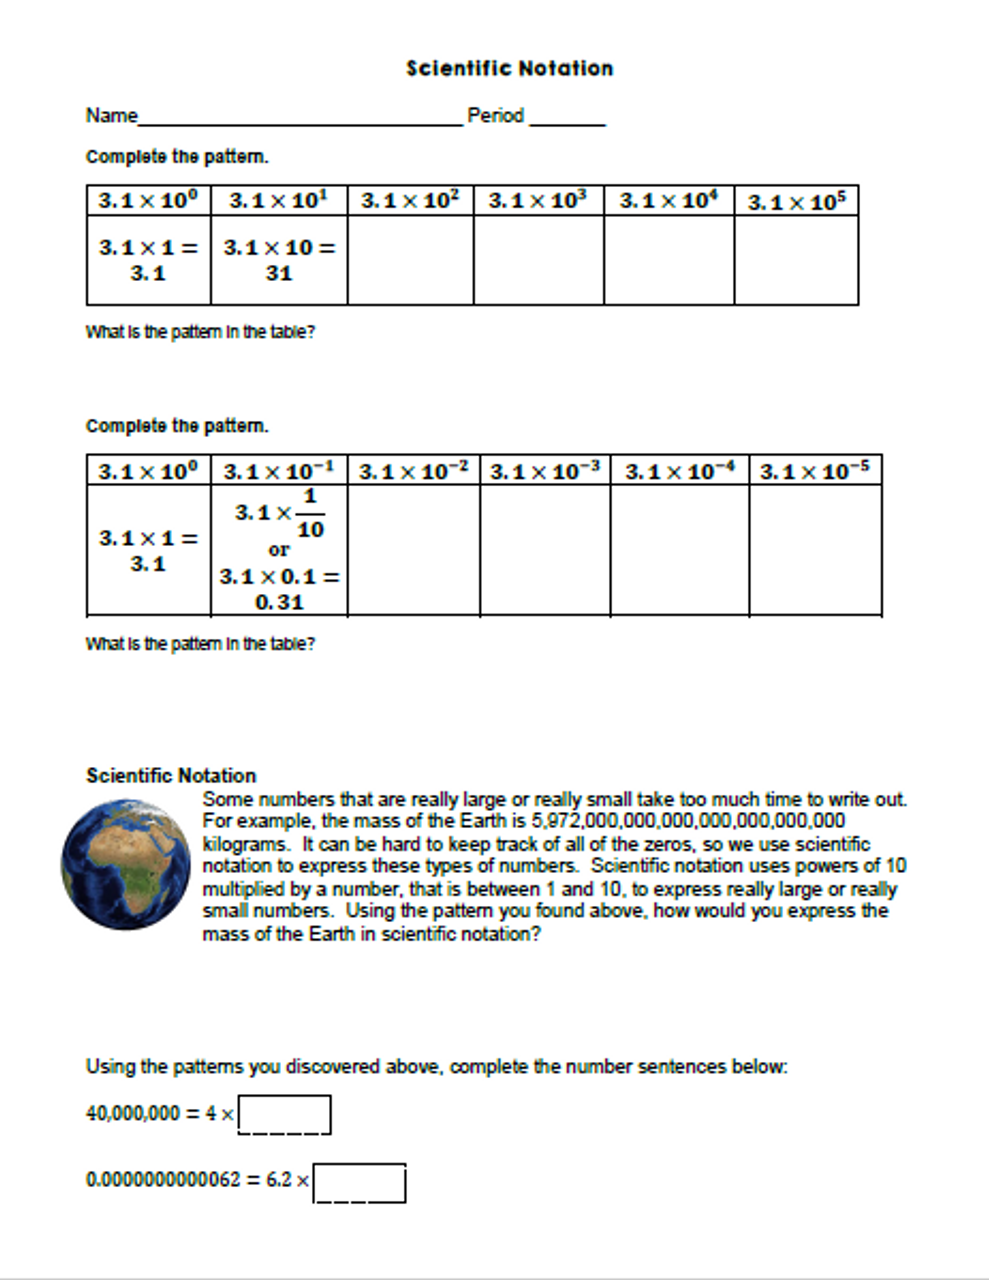 Scientific Notation Patterns Task